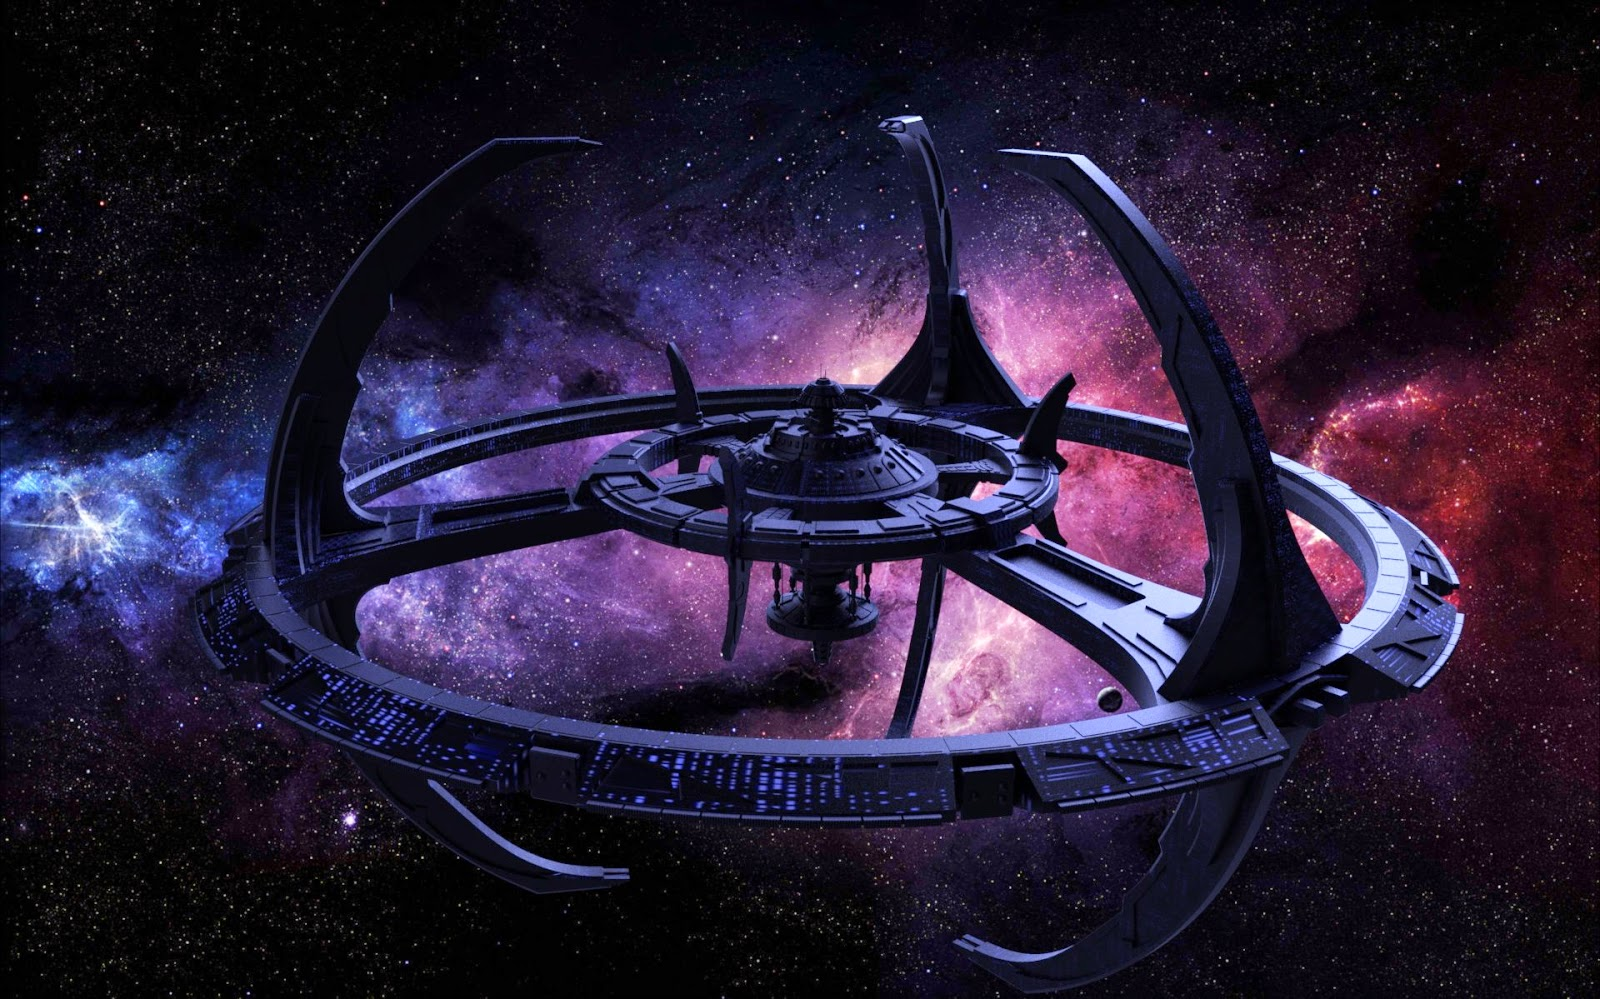 DEEP SPACE NINE: To HD or Not HD?